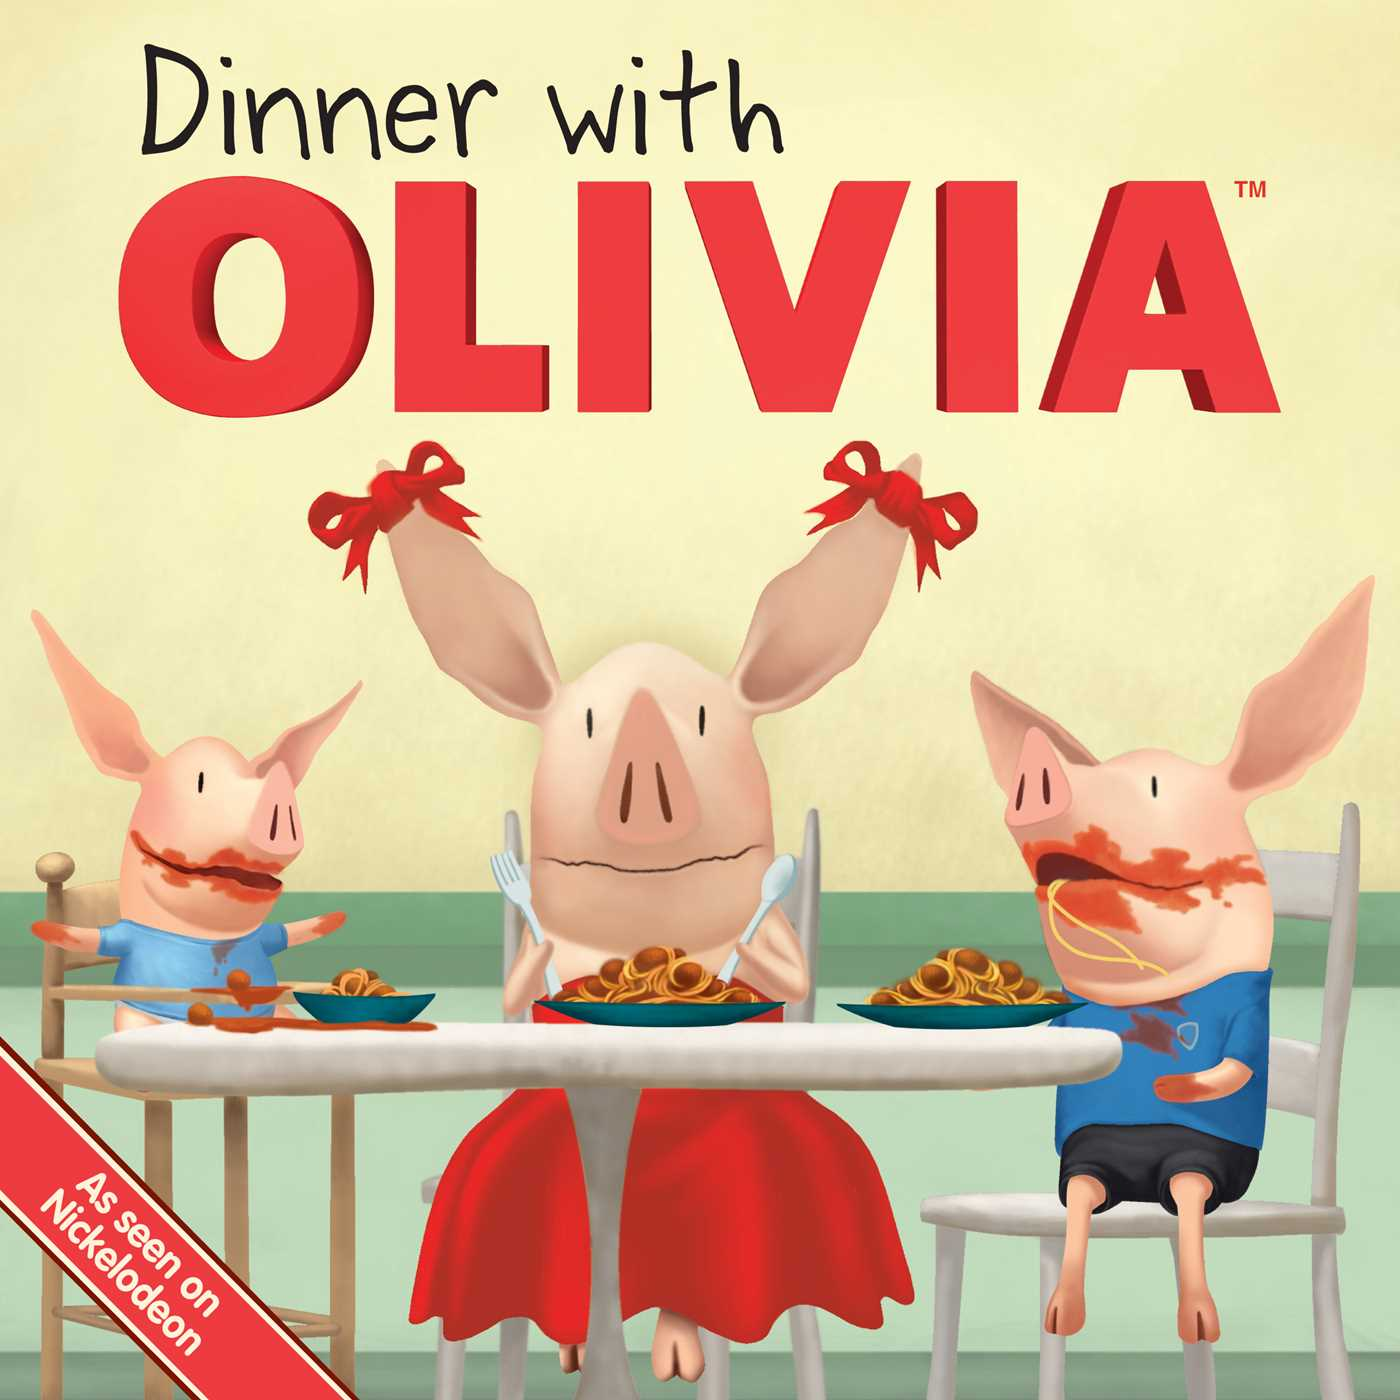 Dinner with olivia 9781442447035 hr